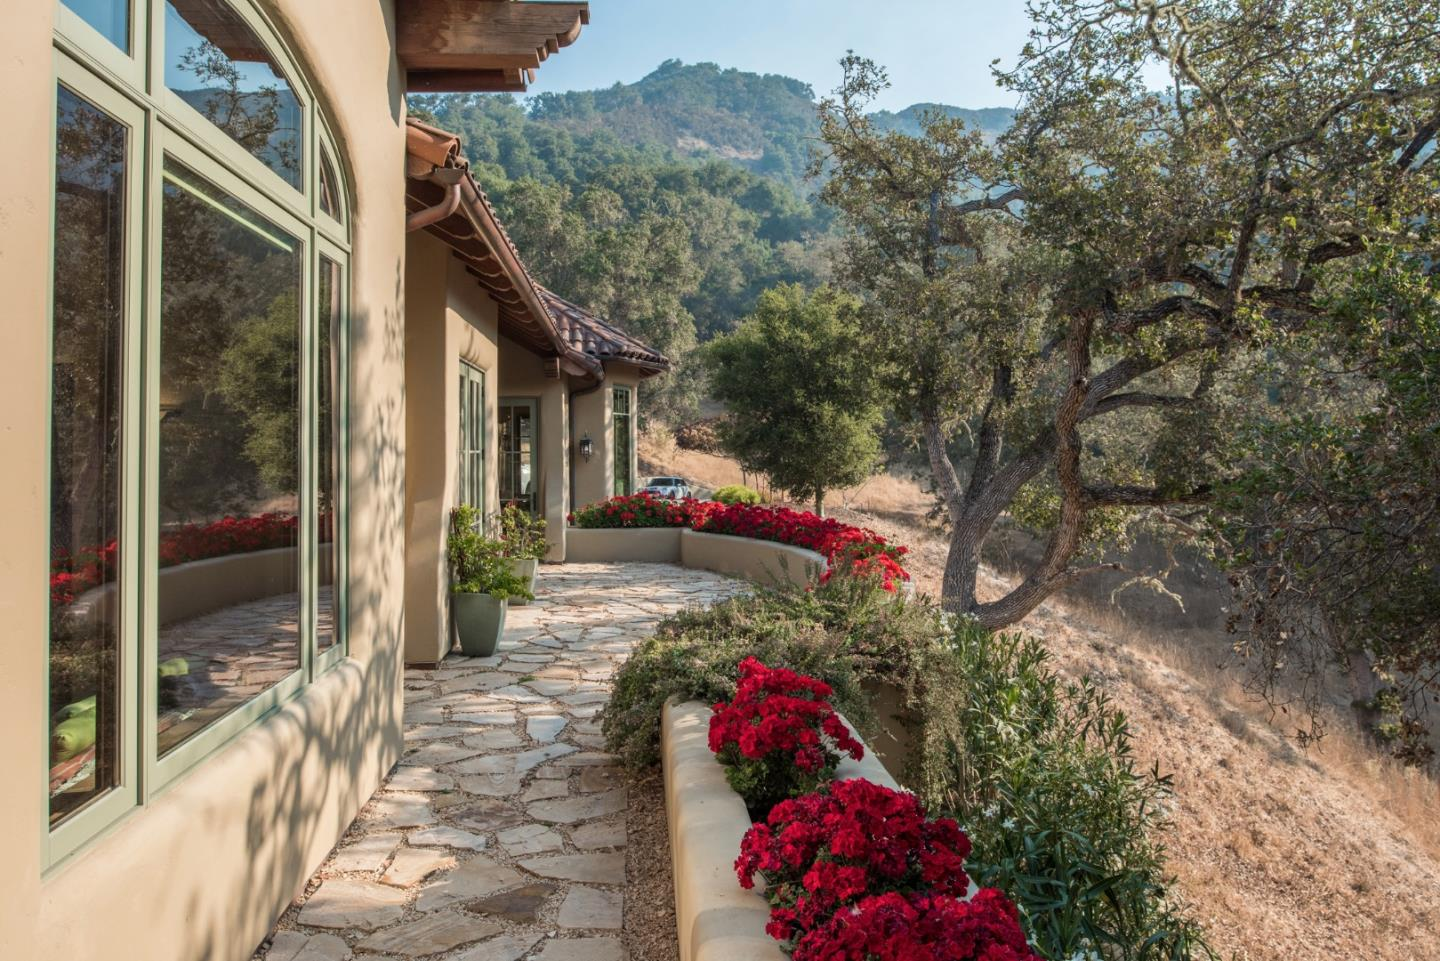 Additional photo for property listing at 59 Rancho San Carlos Road  Carmel, California 93923 Estados Unidos